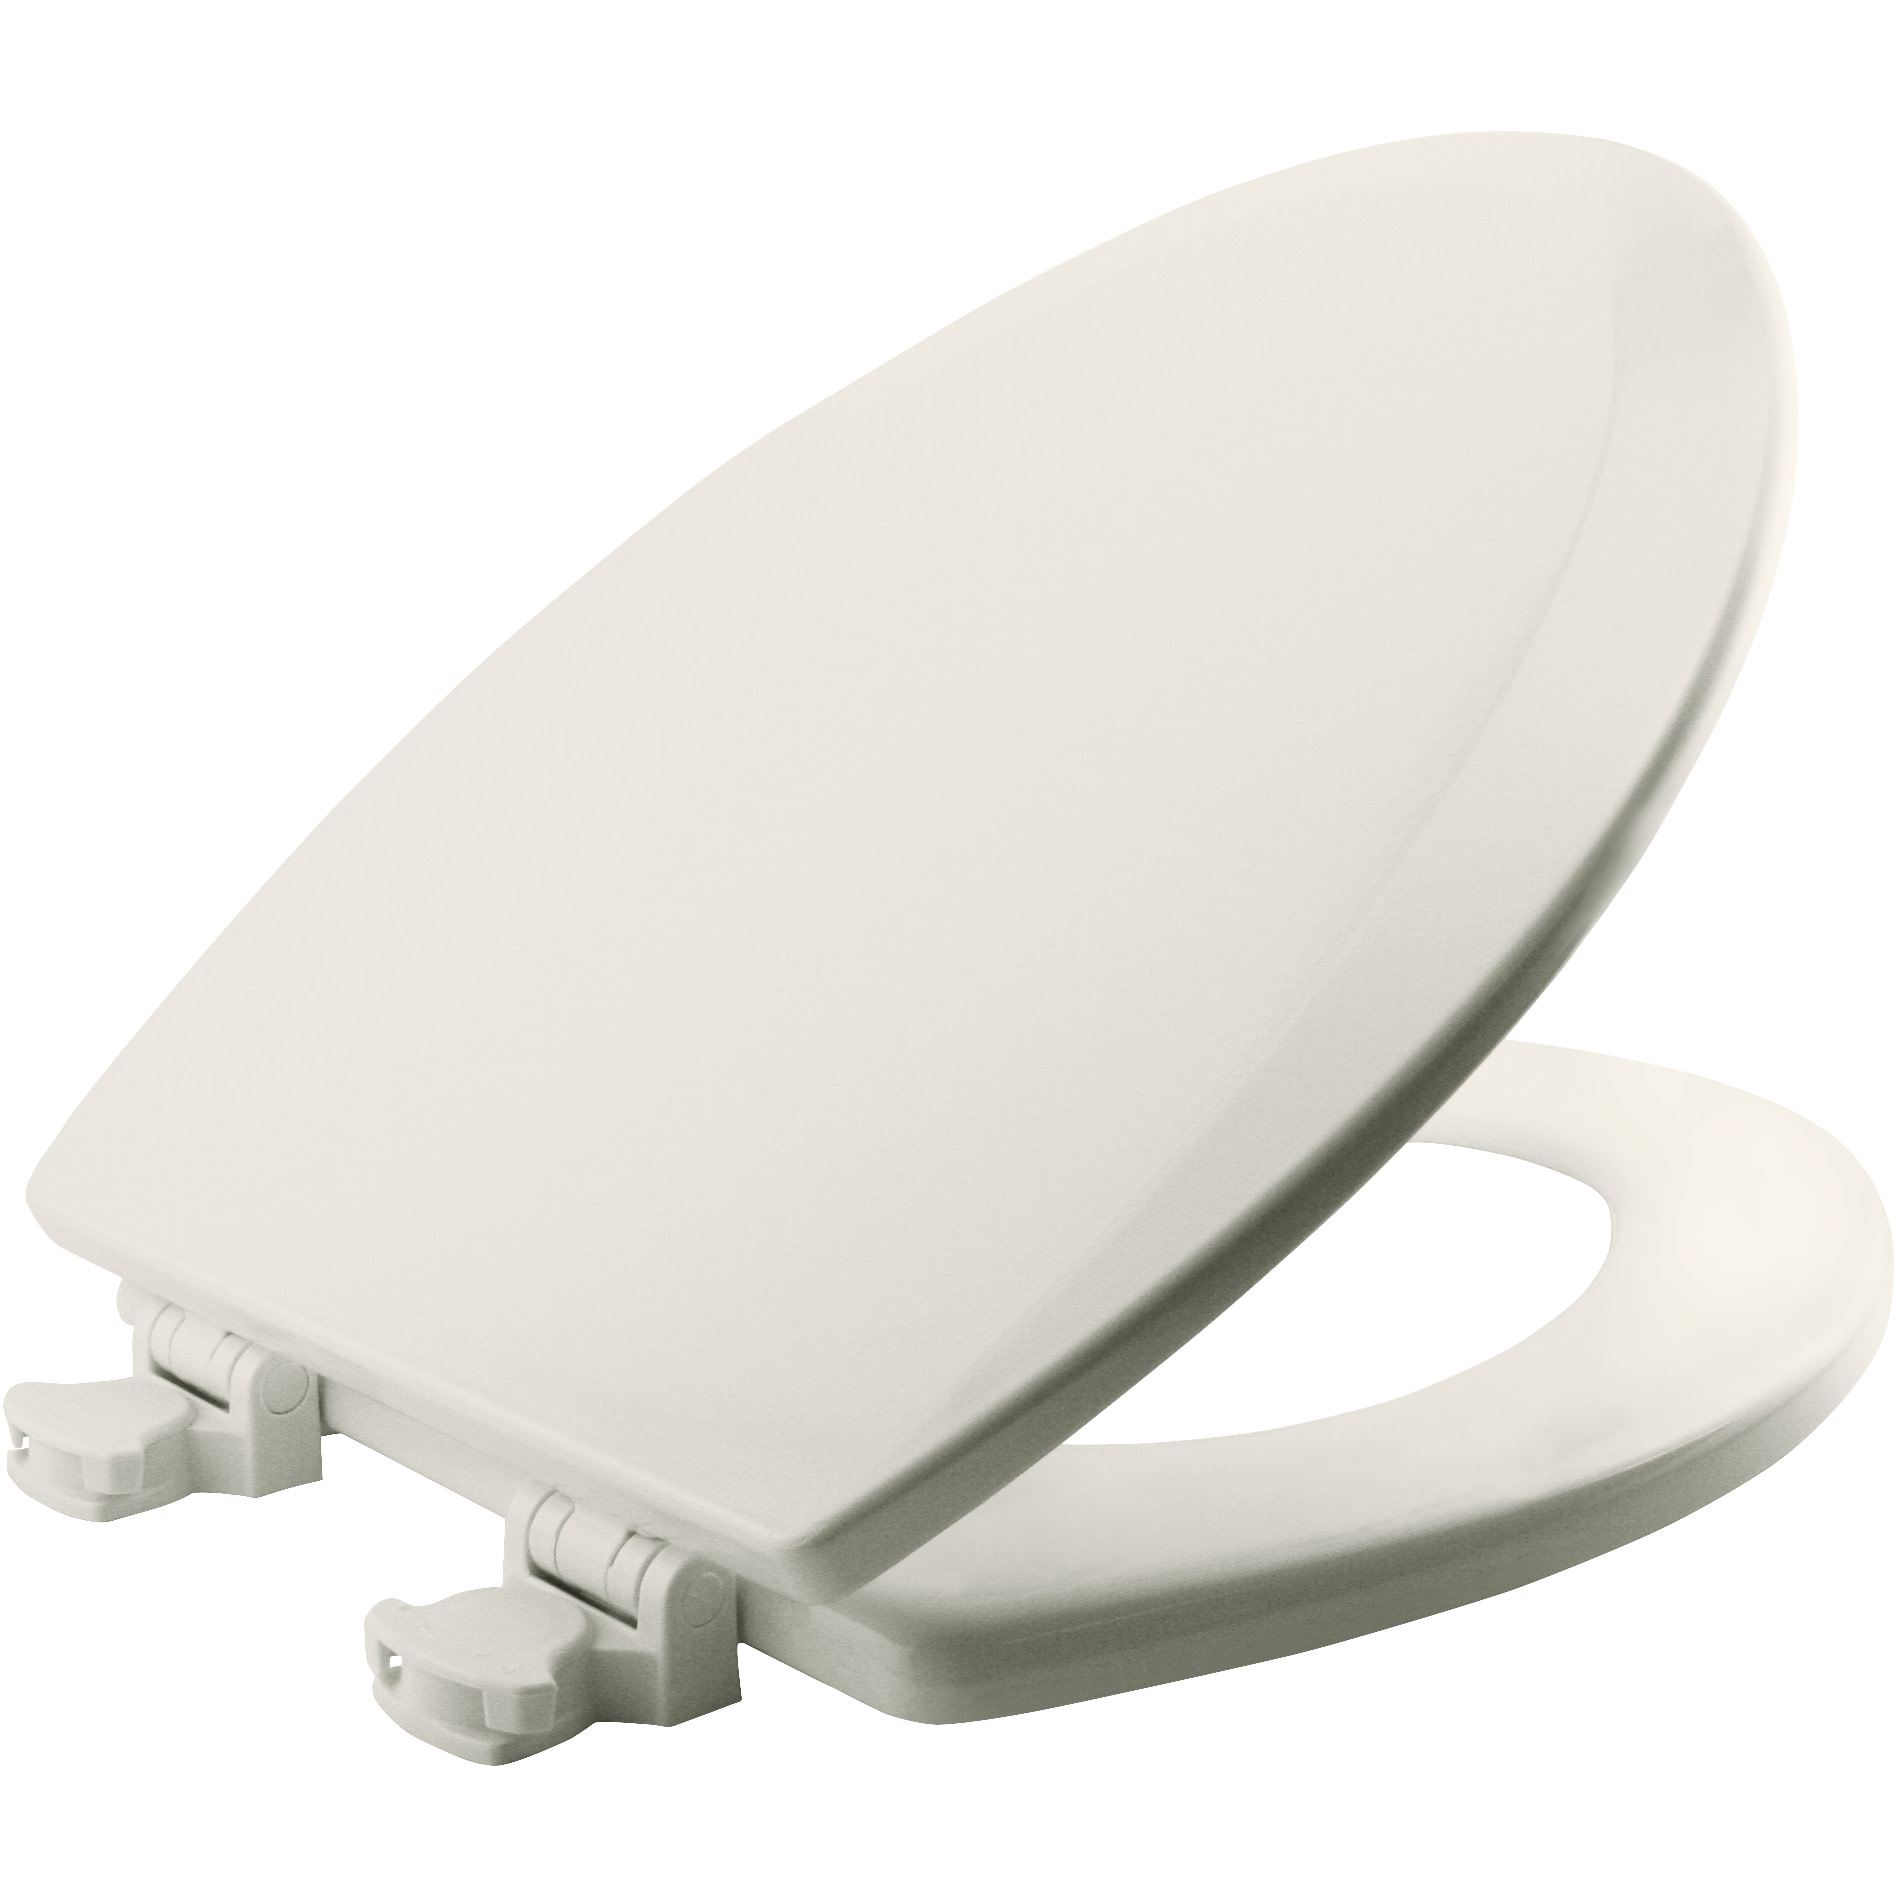 Incredible Bemis Residential Molded Wood Toilet Seats White Ocoug Best Dining Table And Chair Ideas Images Ocougorg